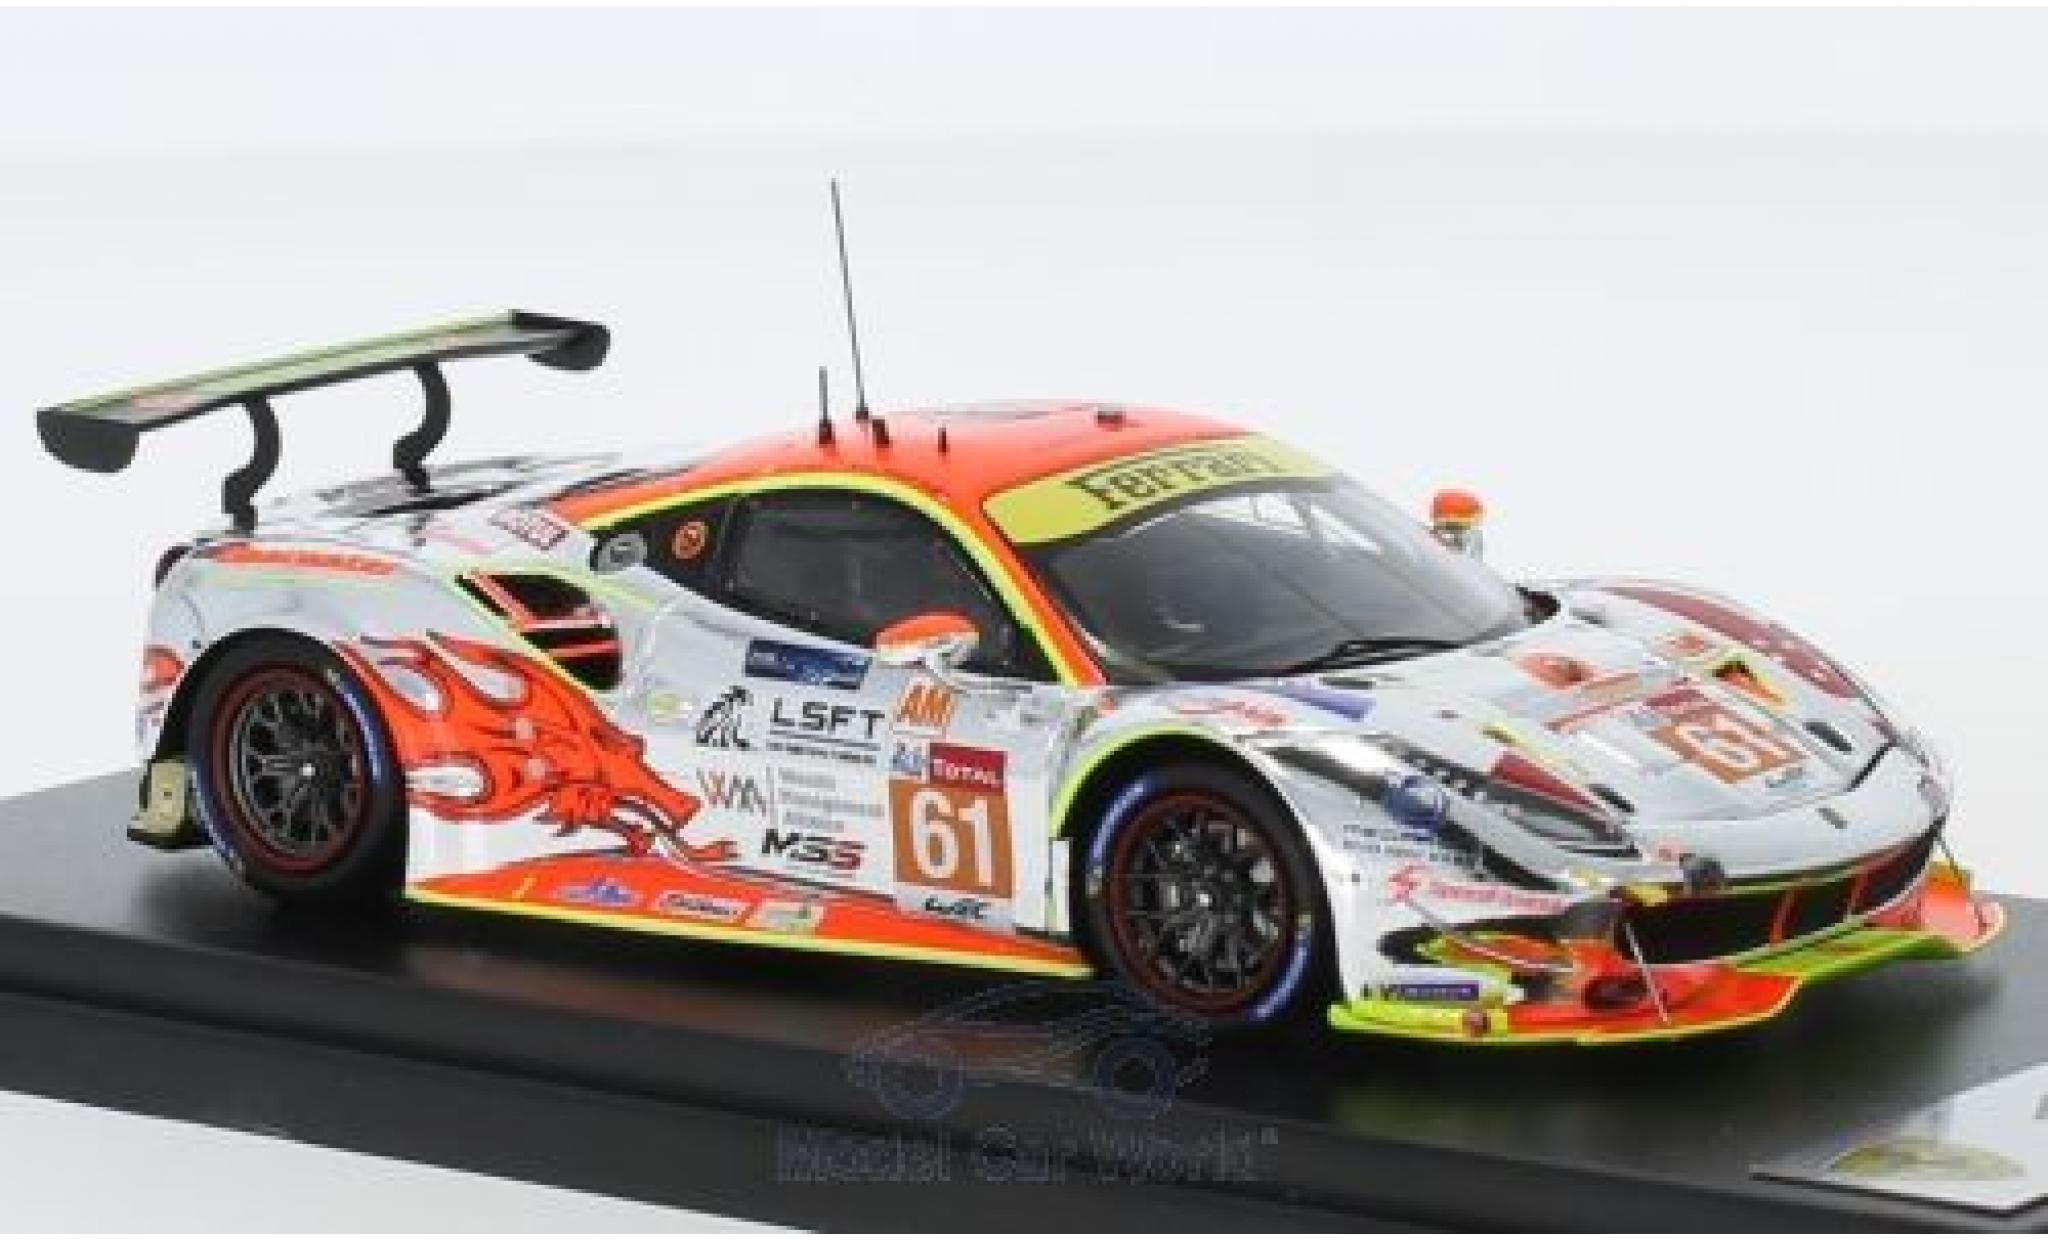 Ferrari 488 1/43 Look Smart GTE No.61 Clearwater Racing 24h Le Mans 2018 W.S.Mok/M.Griffin/K.Sawa